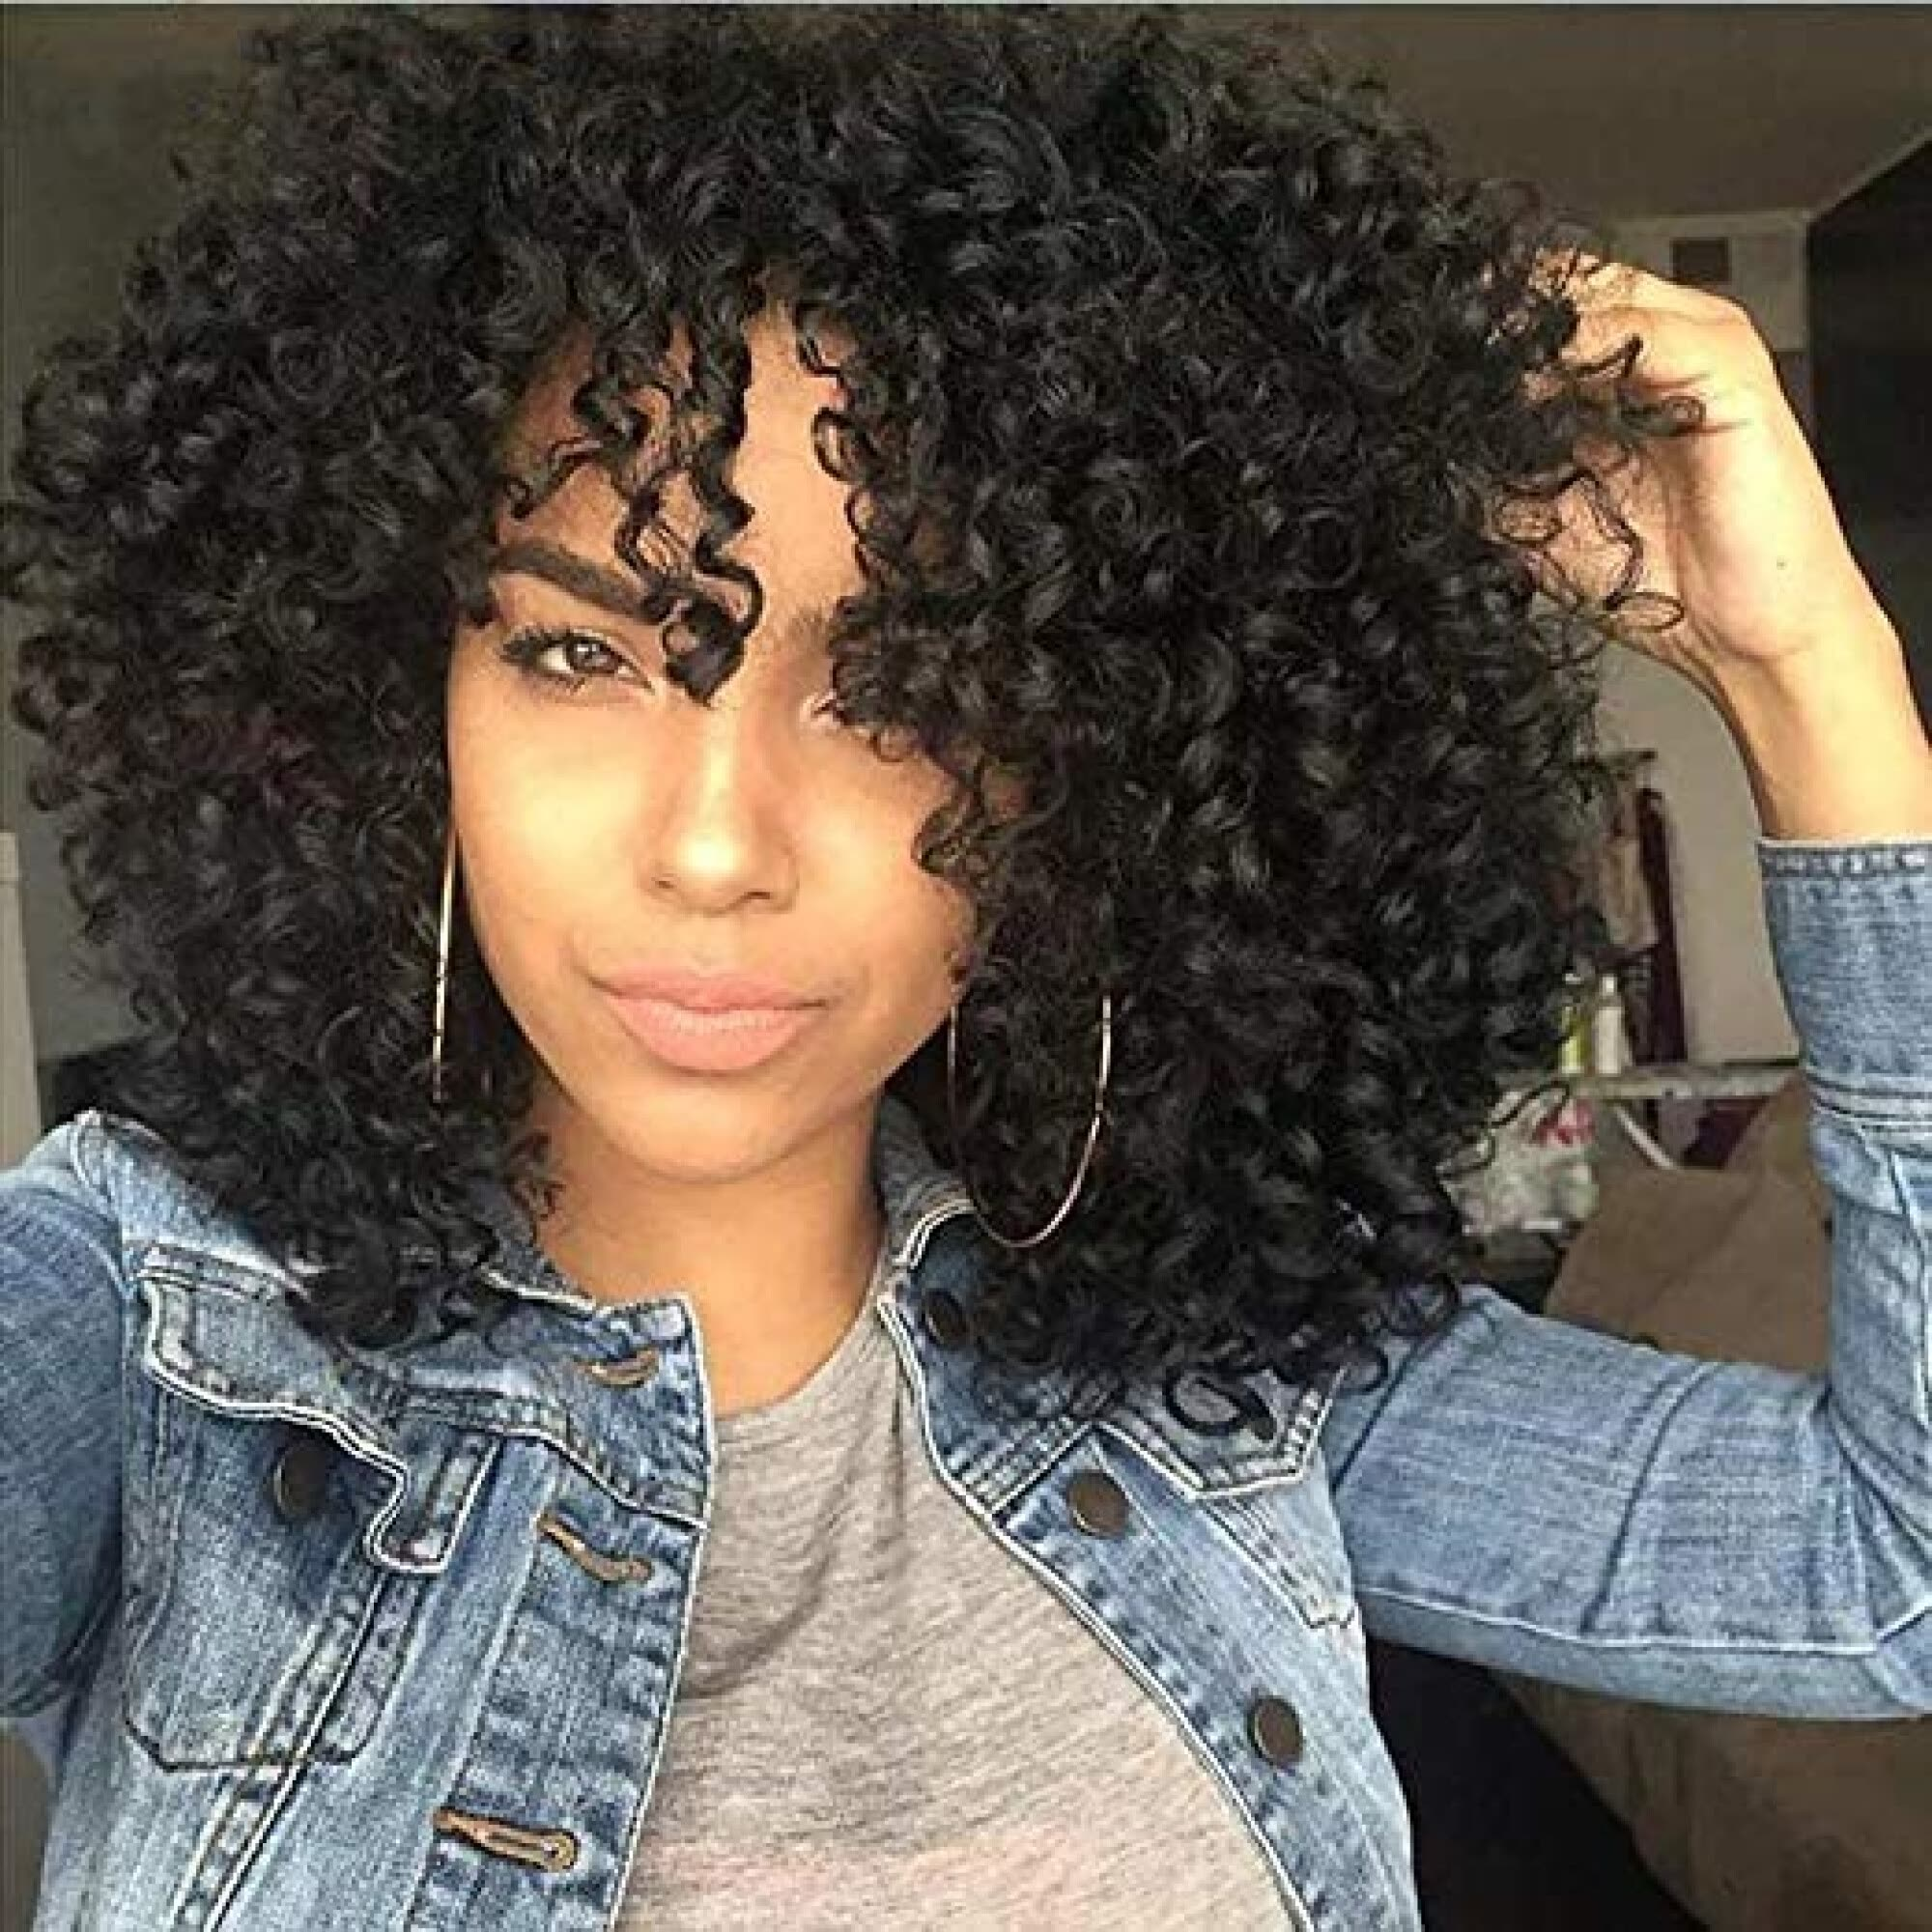 Amazing Star Brazilian Curly Full Cap Wigs for Black Women Synthetic Hair  Weave Cheap Price Synthetic Hair Fashion Full Cap Wigs b4a571777